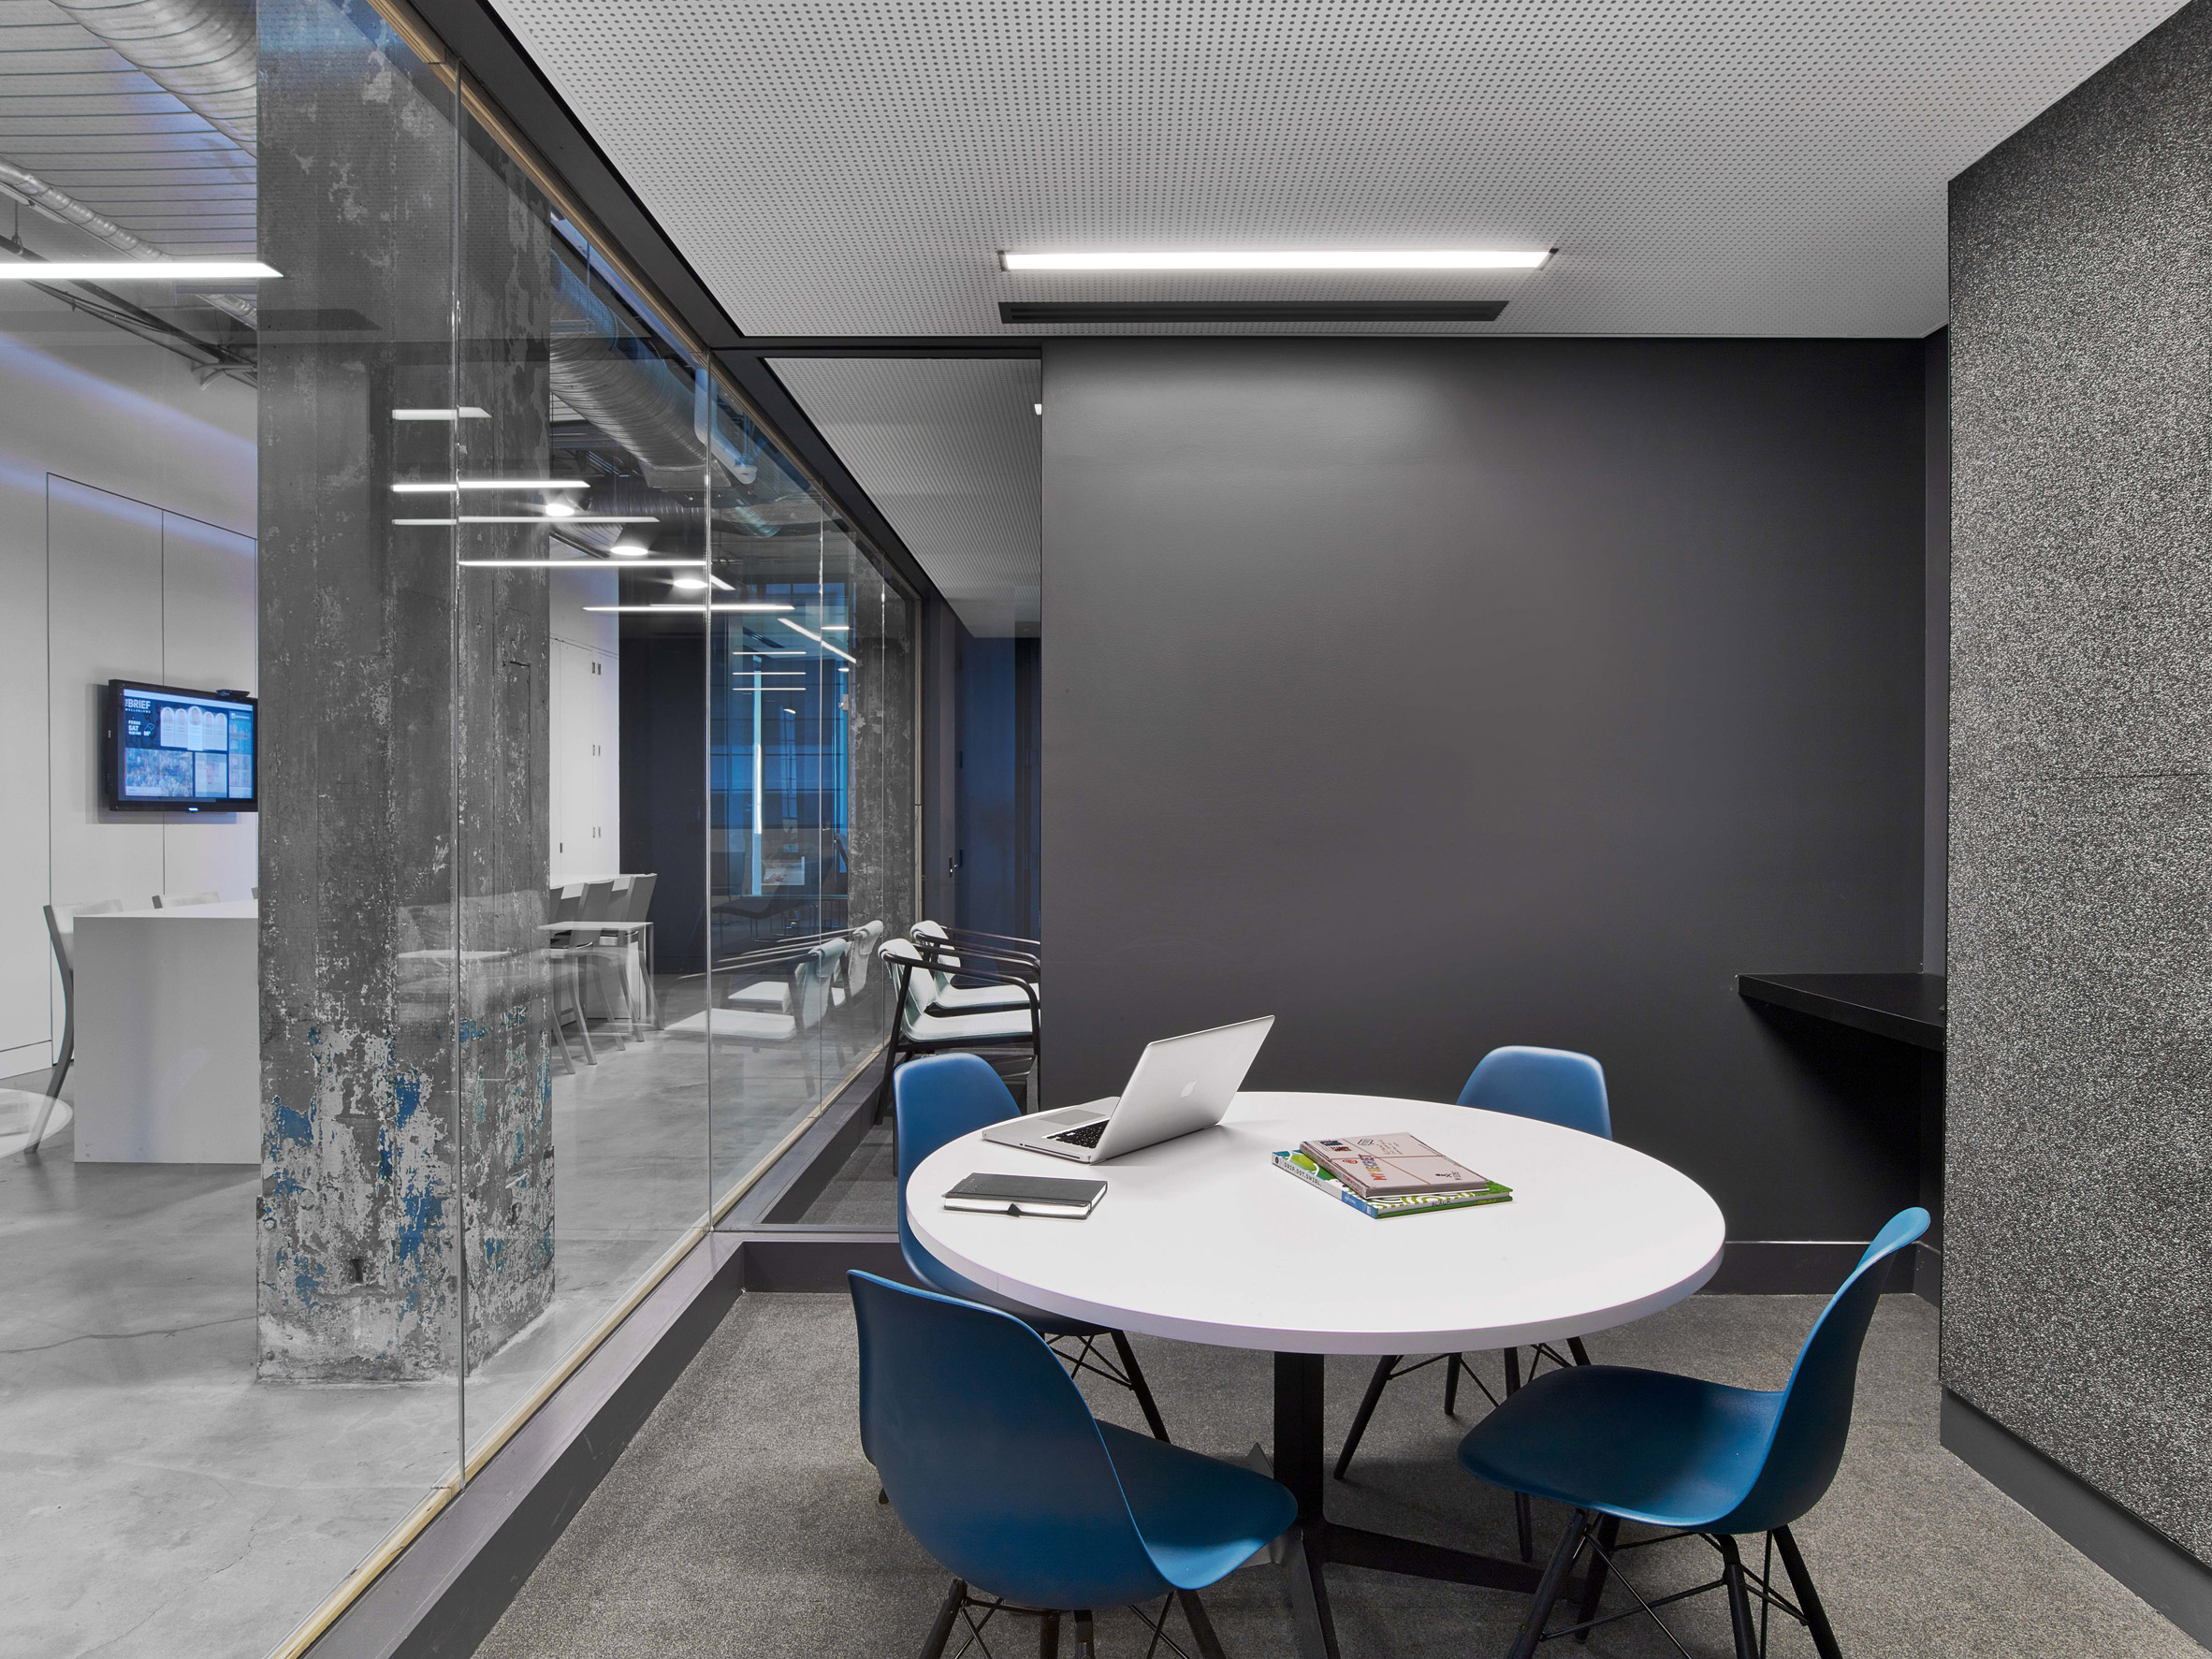 mullen-lowe-offices-tpg-architecture-interiors-north-carolina-usa_dezeen_2364_col_29.jpg